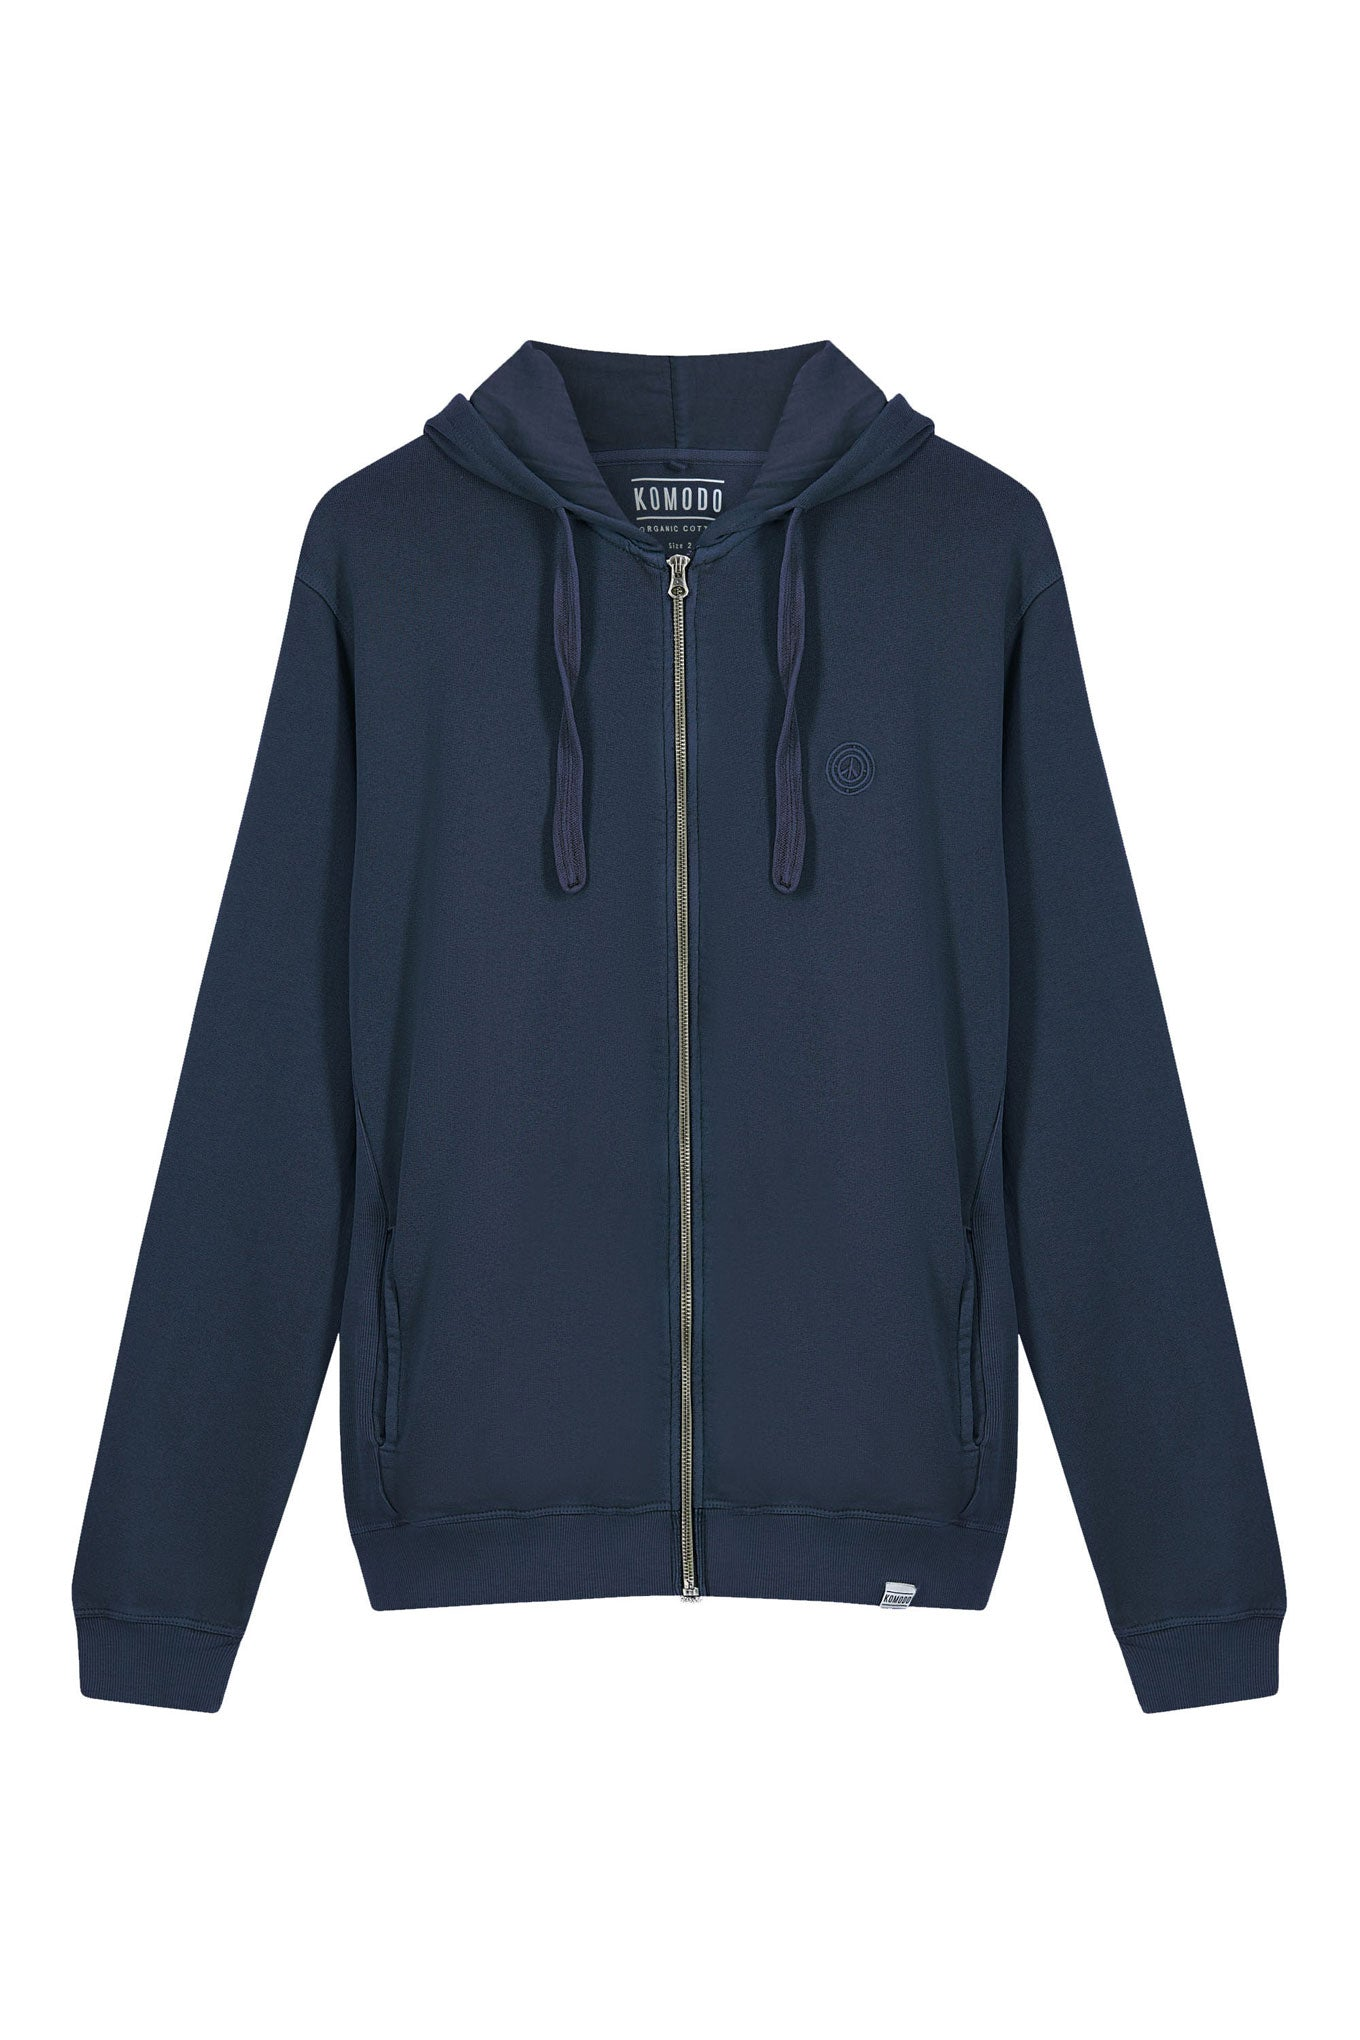 APOLLO Womens Organic Cotton Zip Hoodie Navy